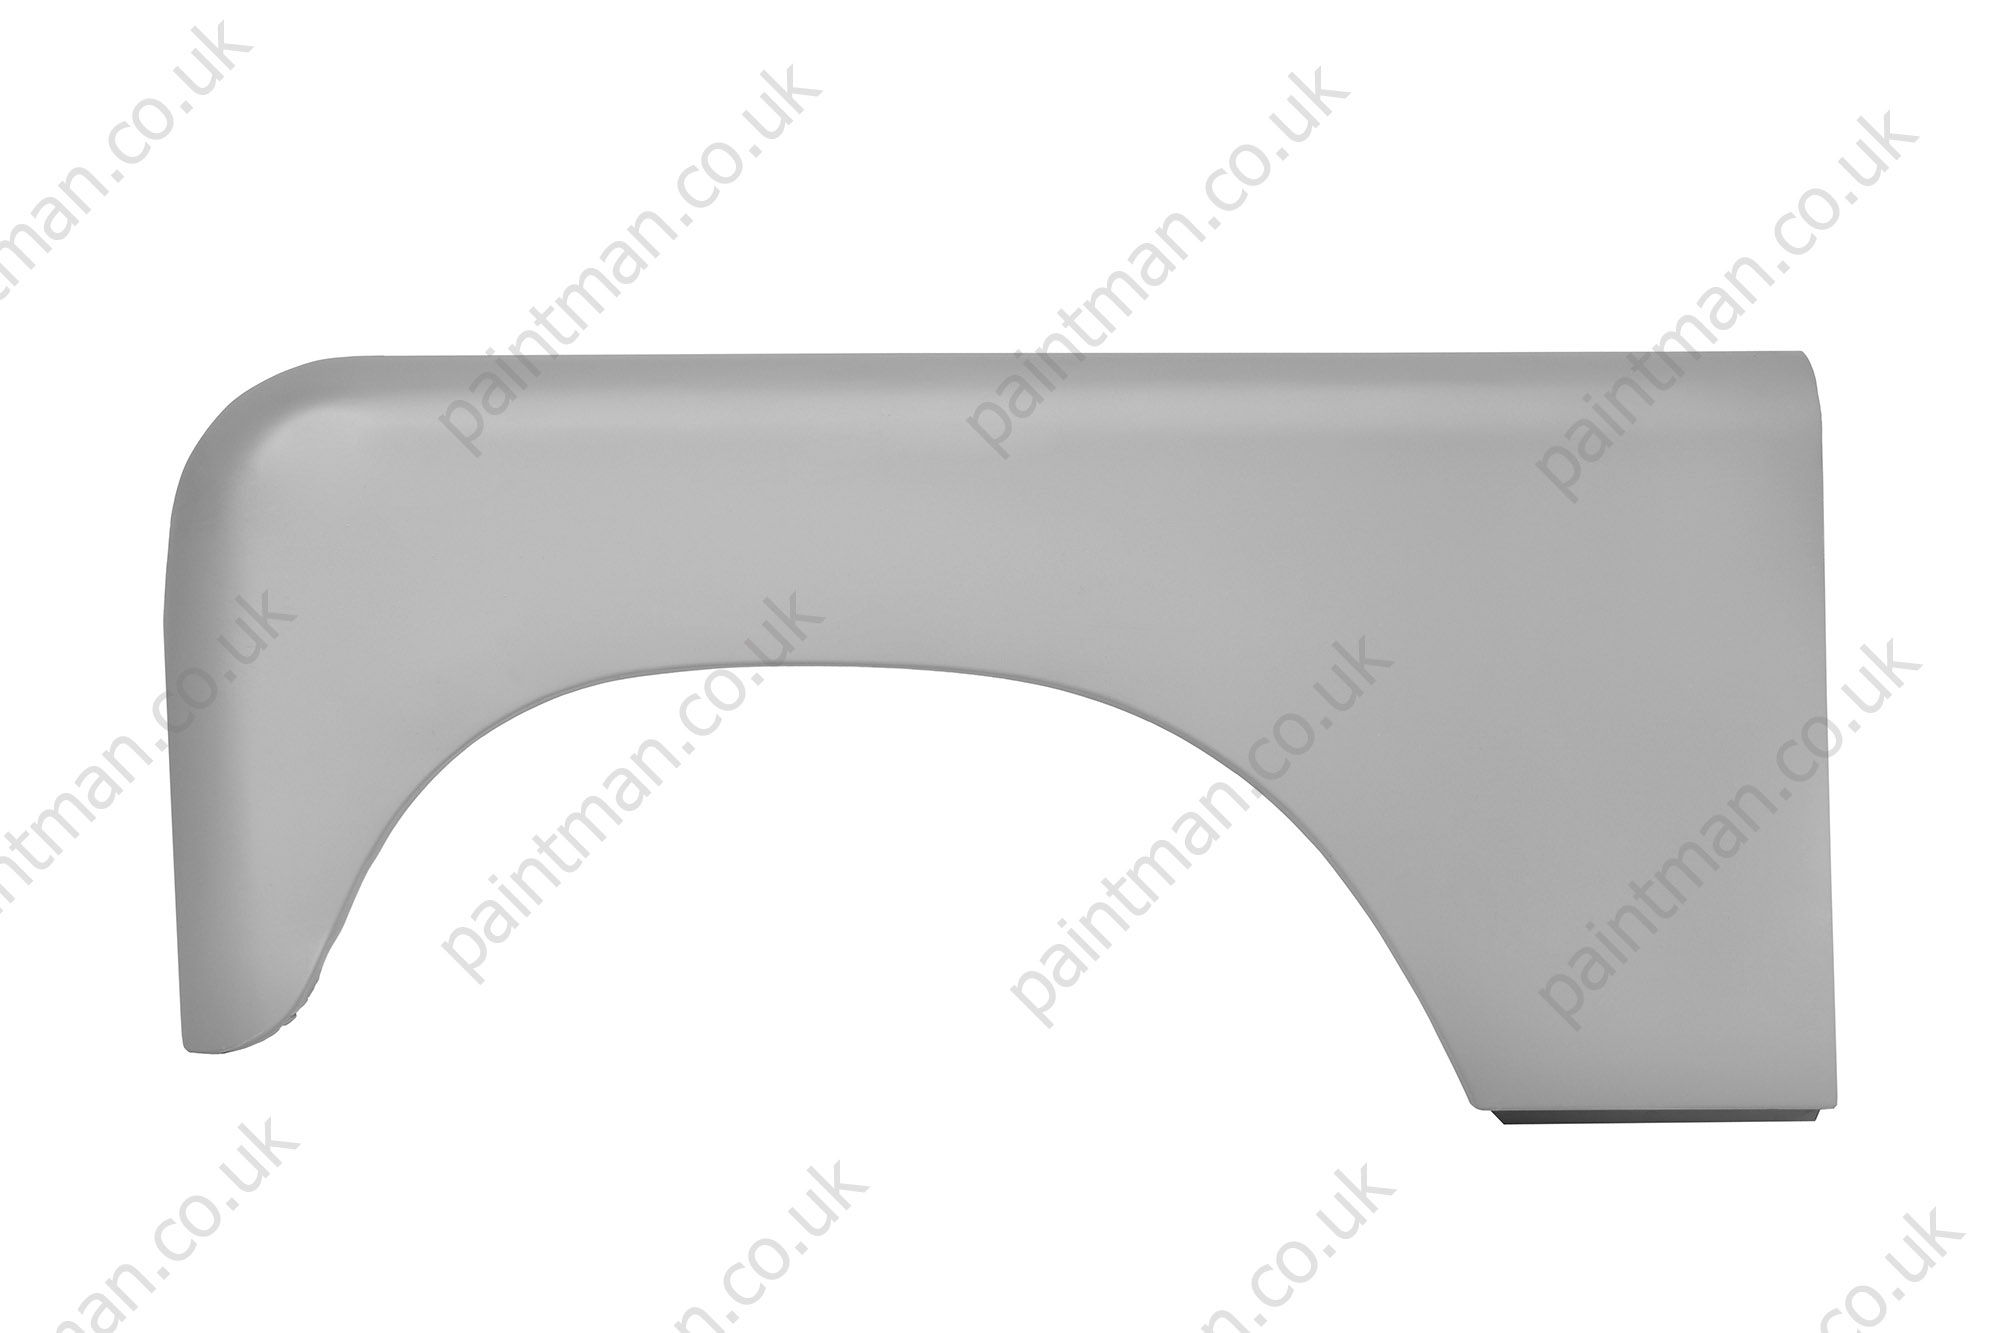 330427 Land Rover Series 2 Front Wing Outer Skin - LH